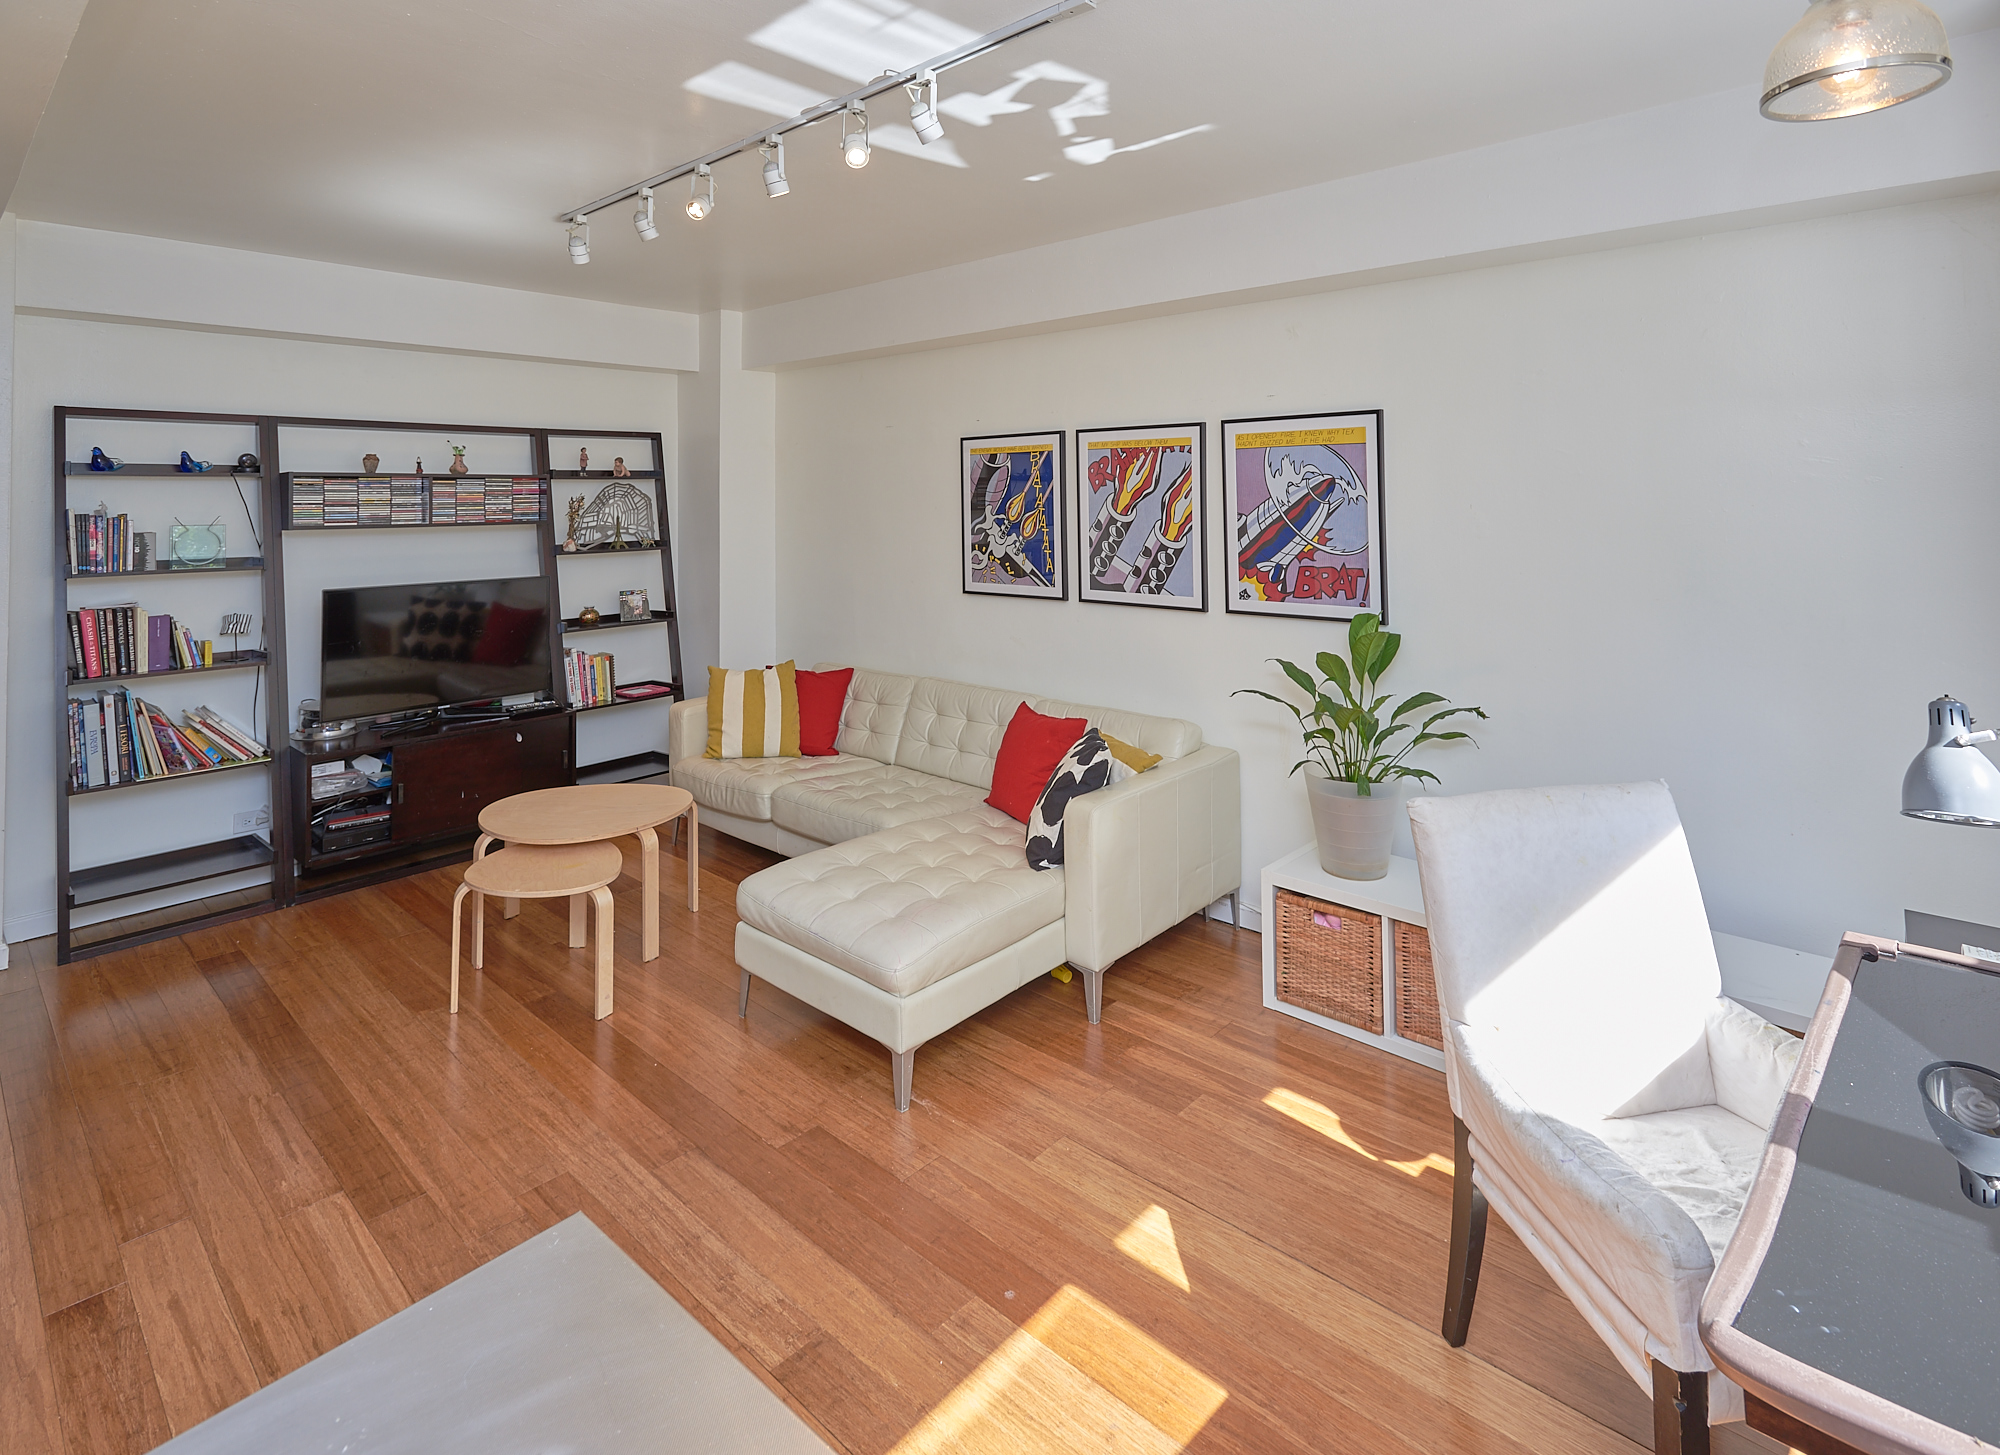 West village 1 bedroom for sale at 180 w houston st new for West village apartment for sale